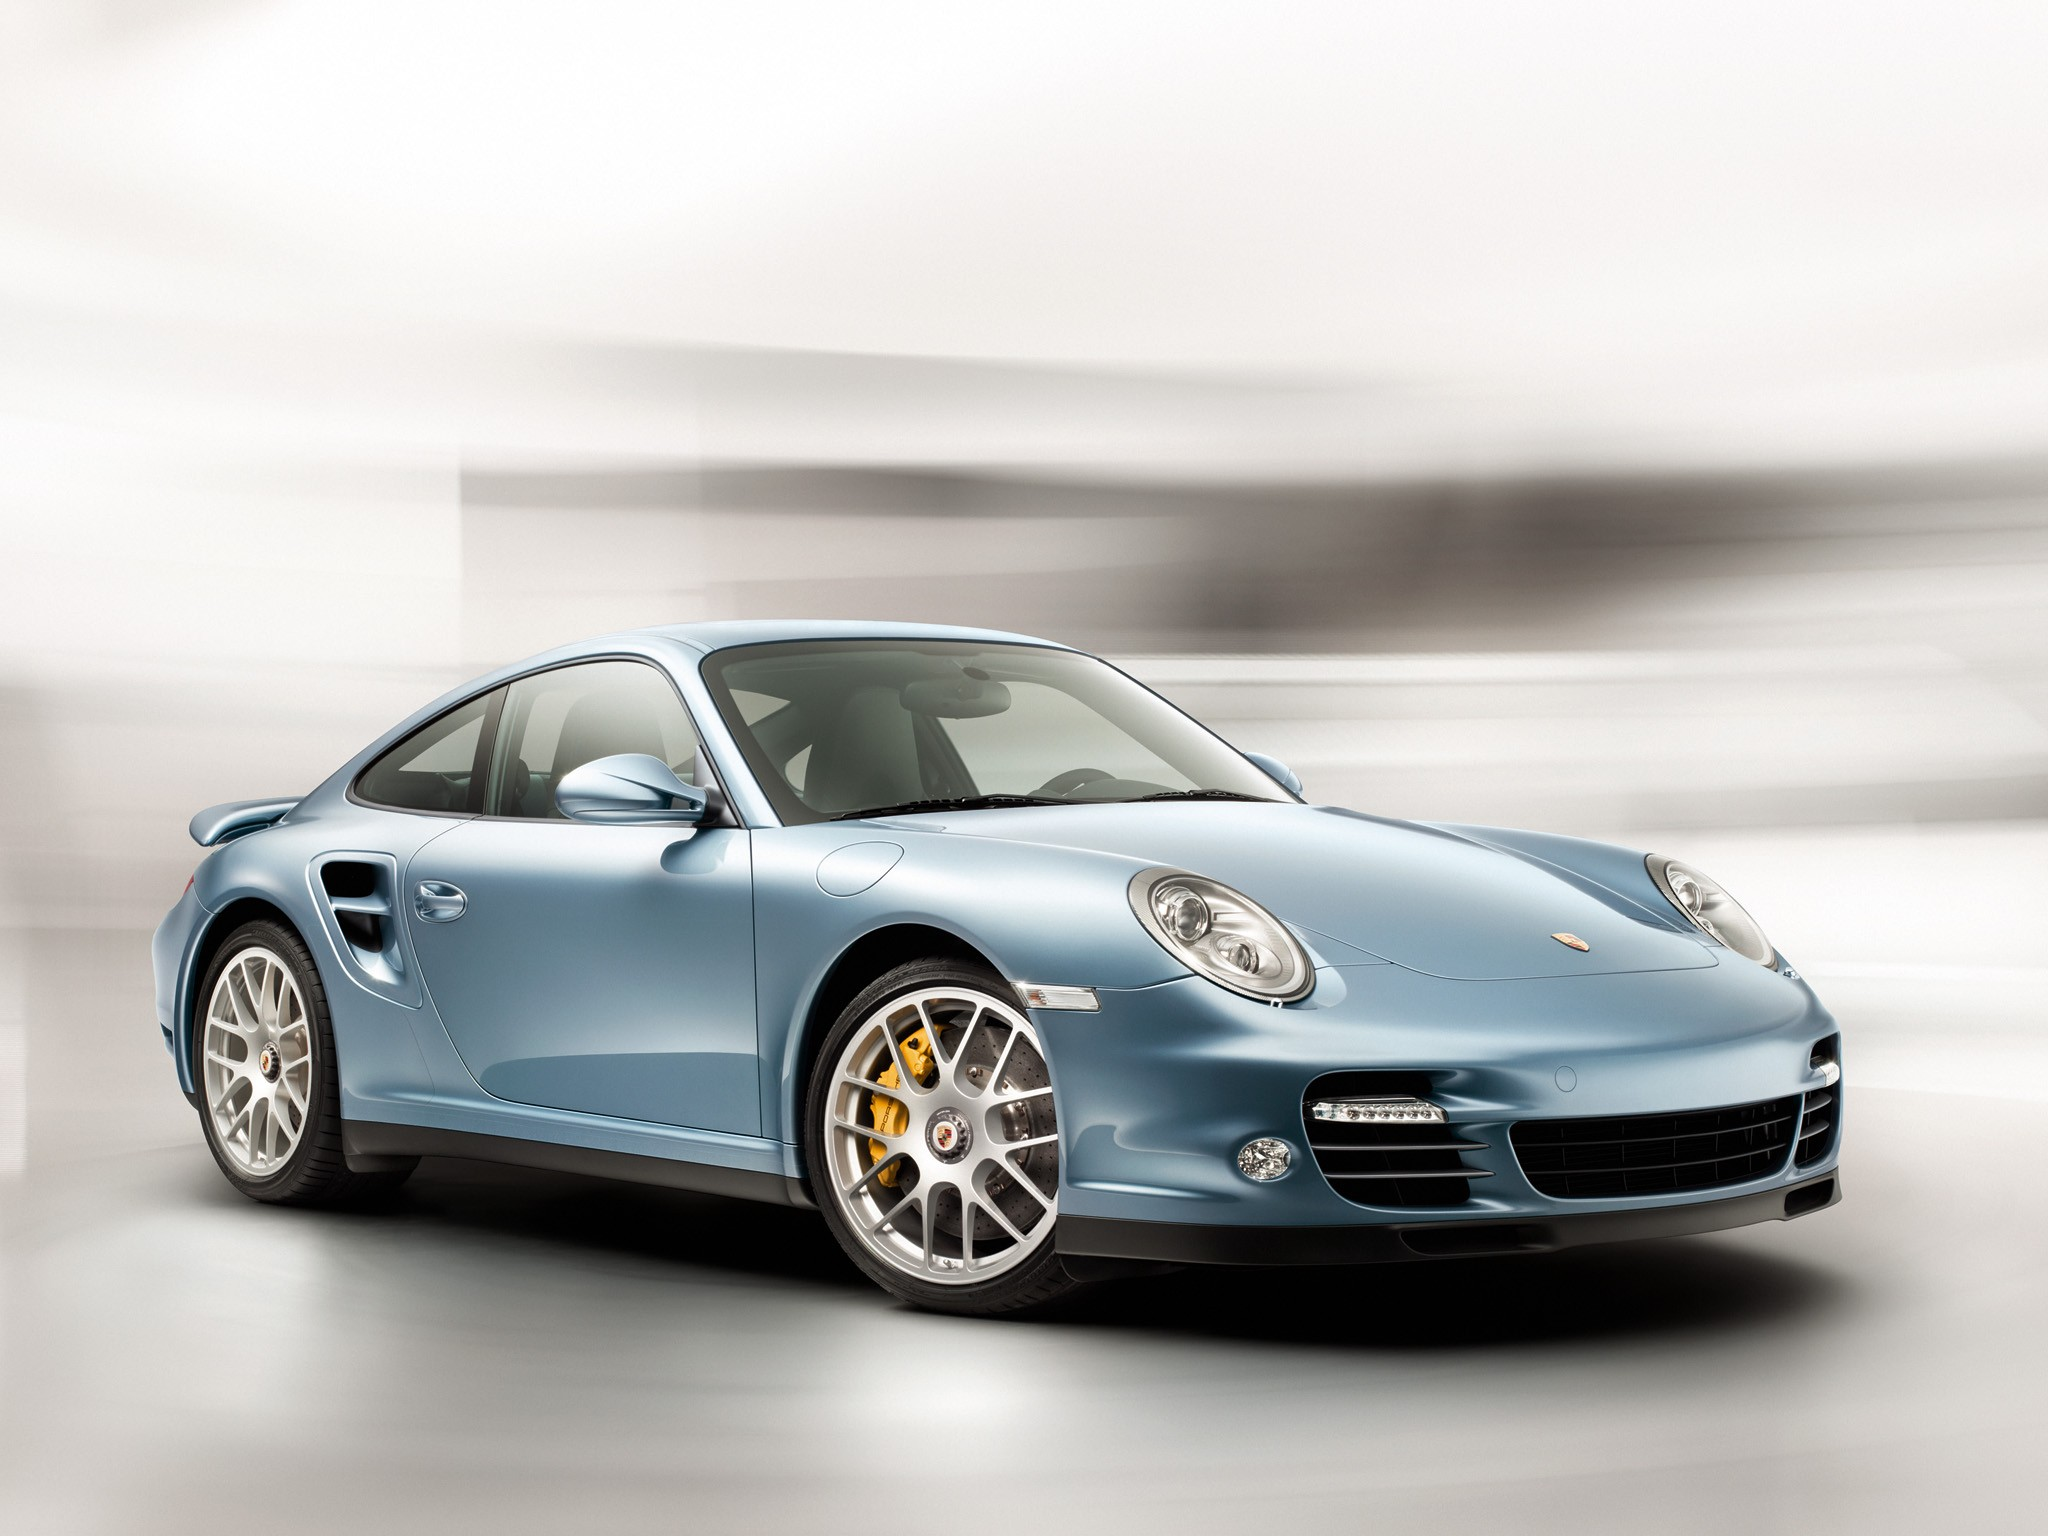 porsche 911 turbo s 997 2010 2011 autoevolution. Black Bedroom Furniture Sets. Home Design Ideas